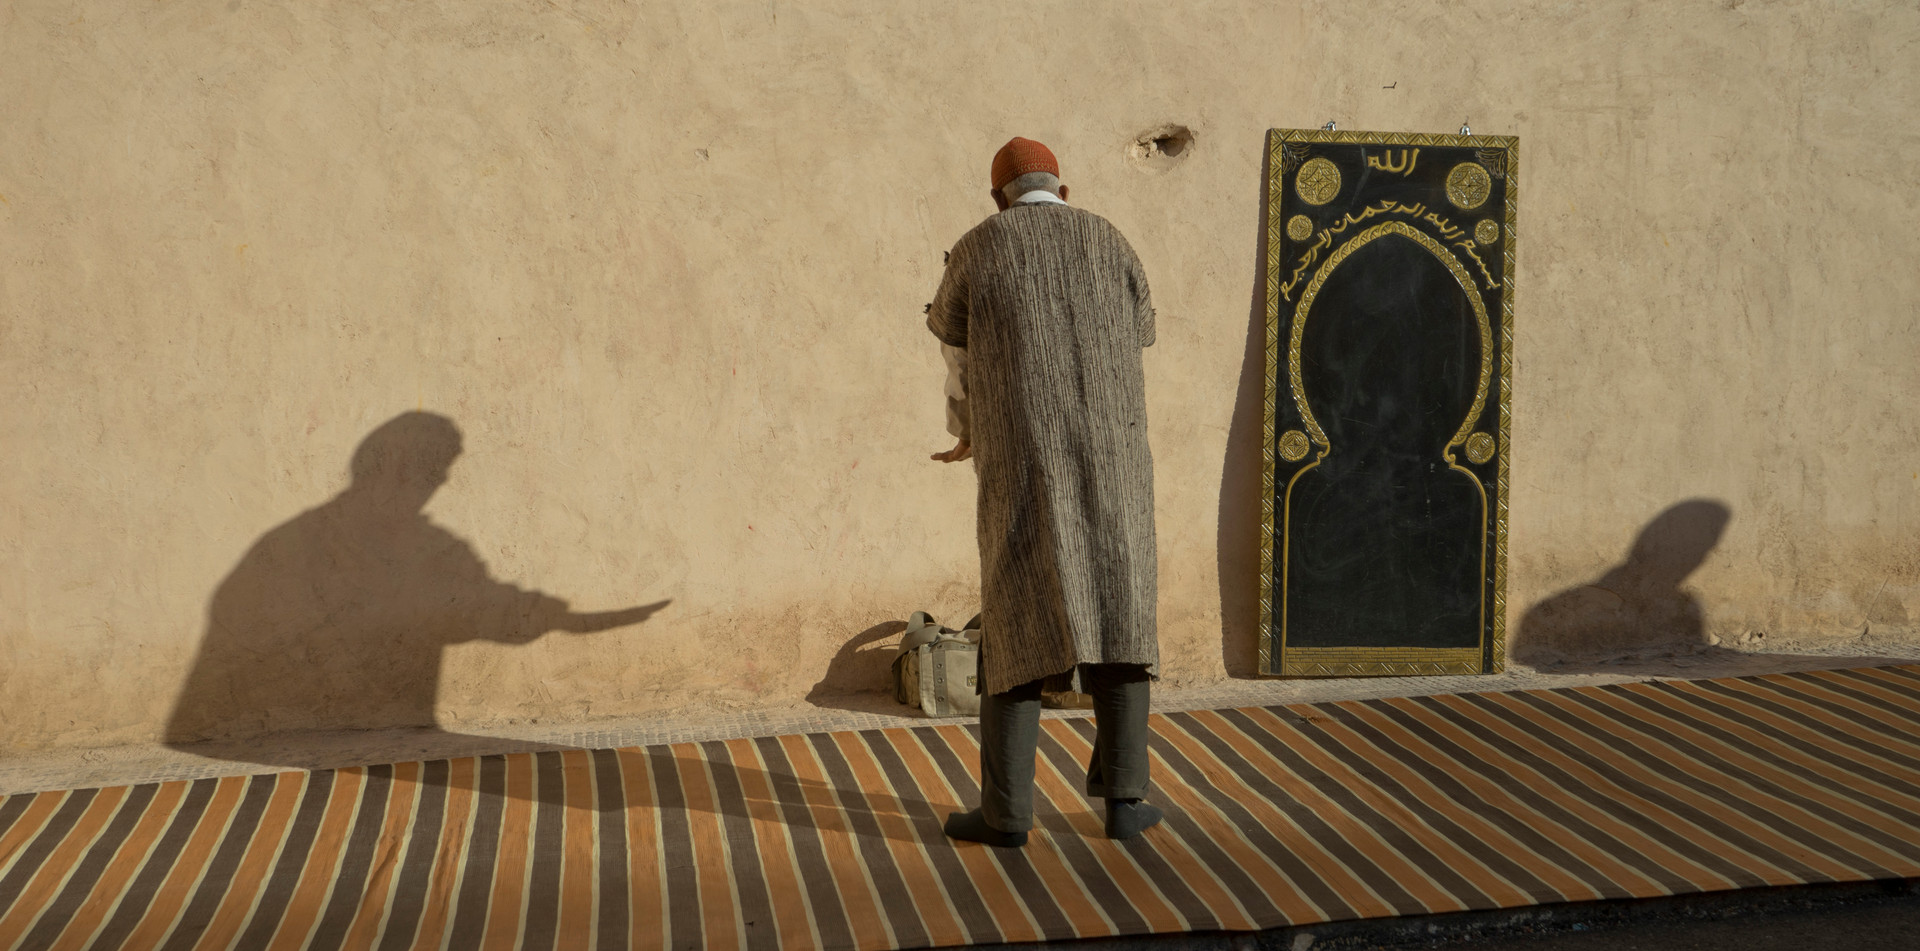 Muslim man praying in Marrakech during Ramadan